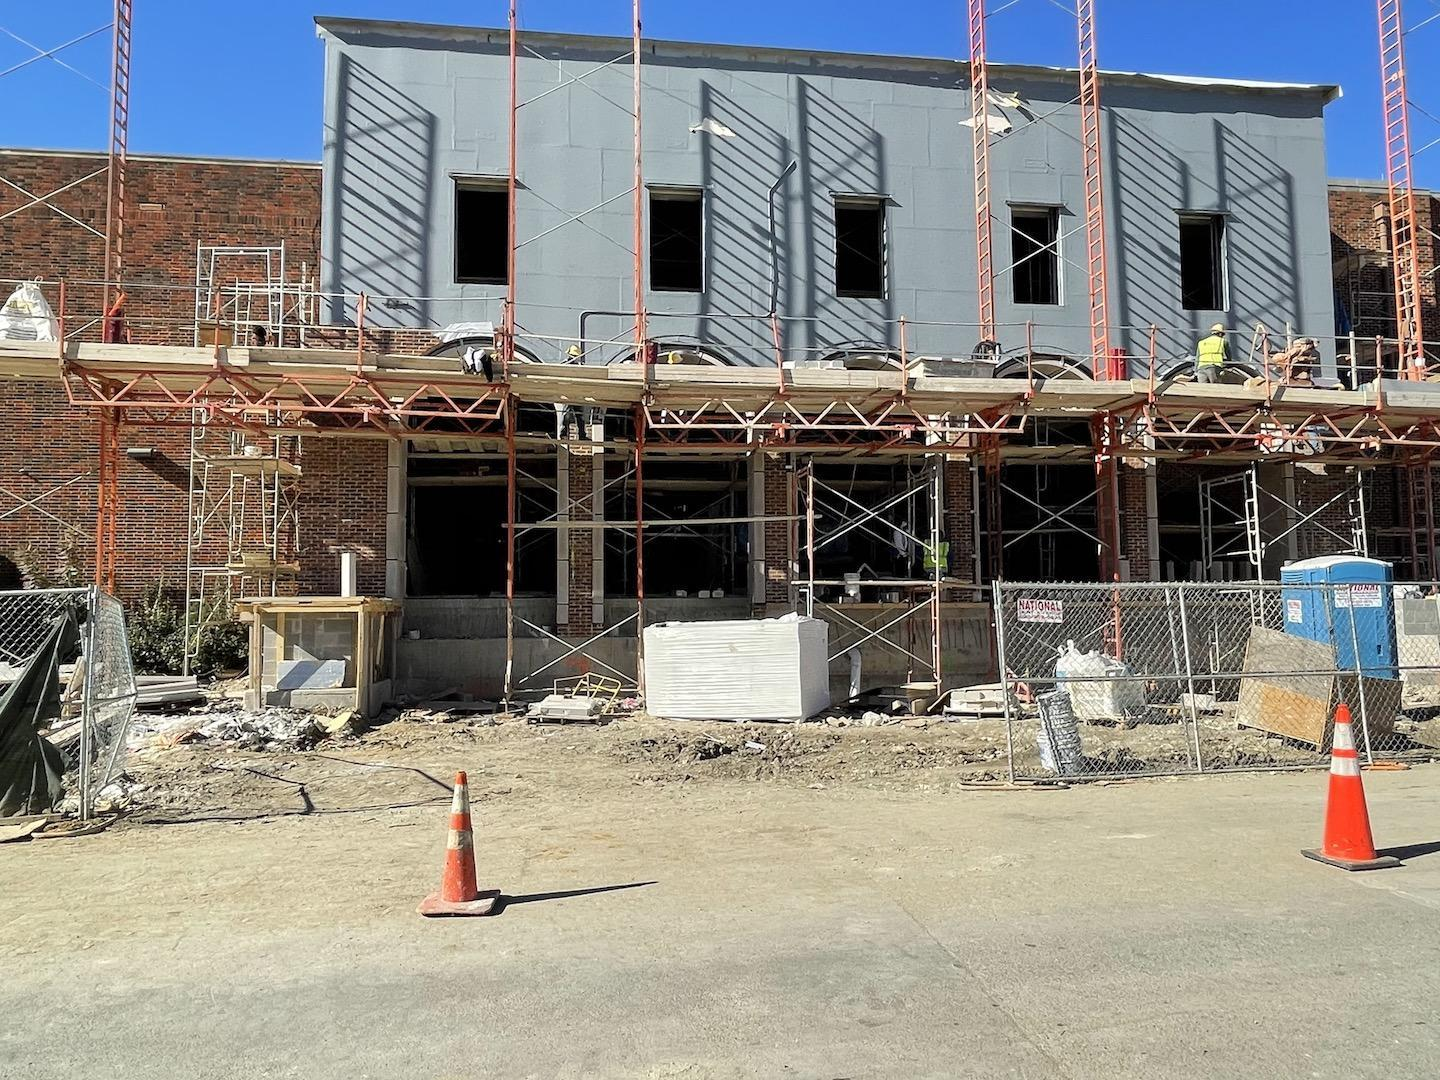 HPHS front 122020